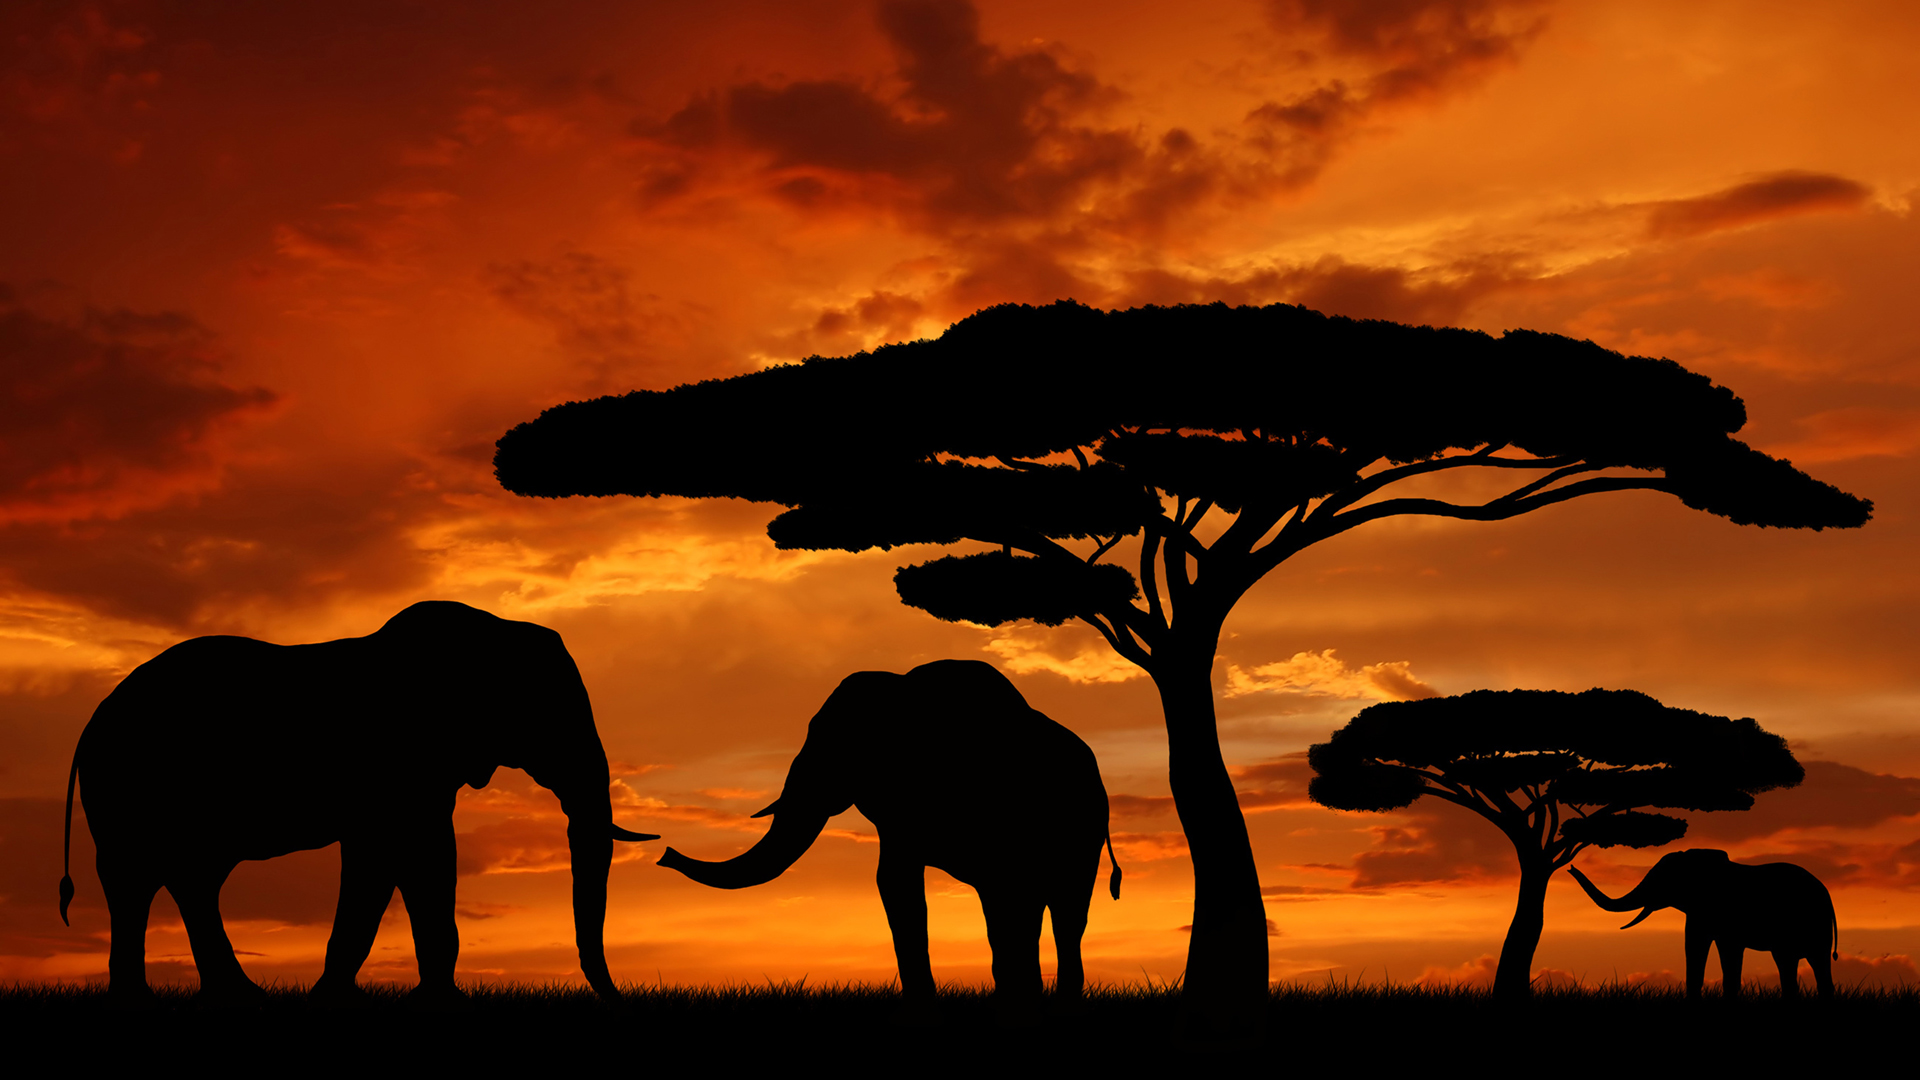 Africa Silhouettes Elephants